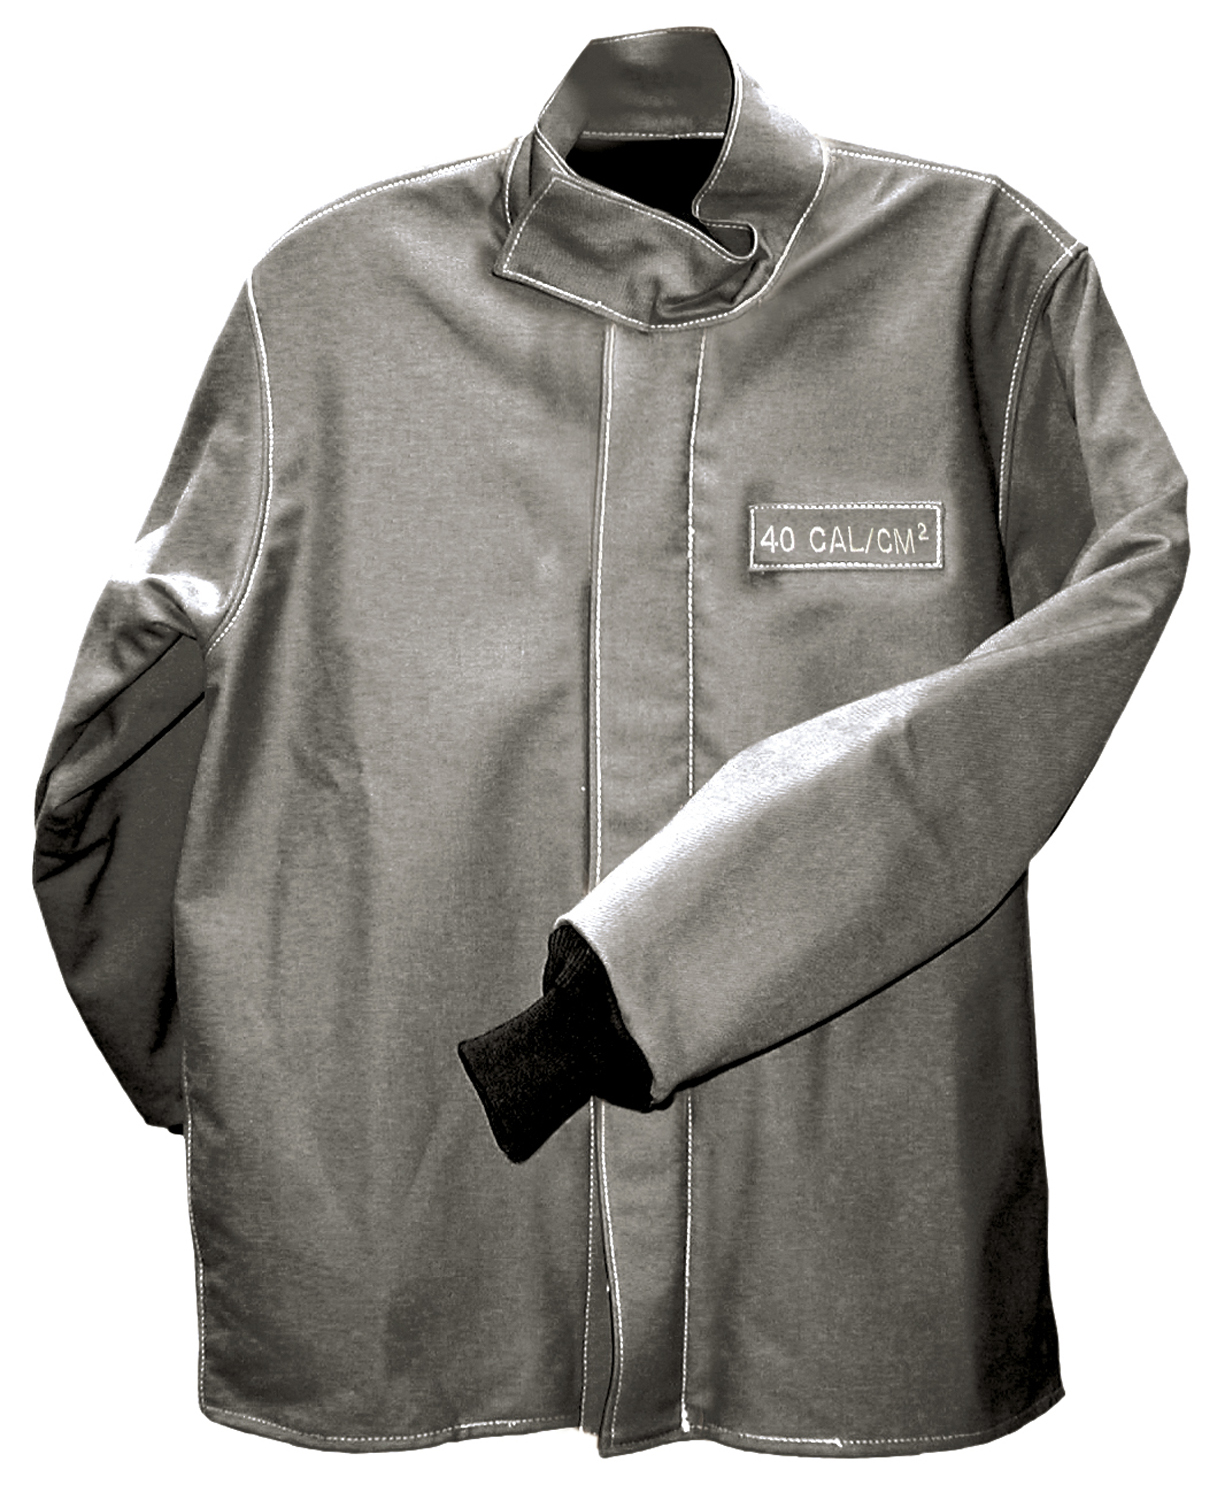 Salisbury Arc Flash 40 Cal Coat.  Size Small.